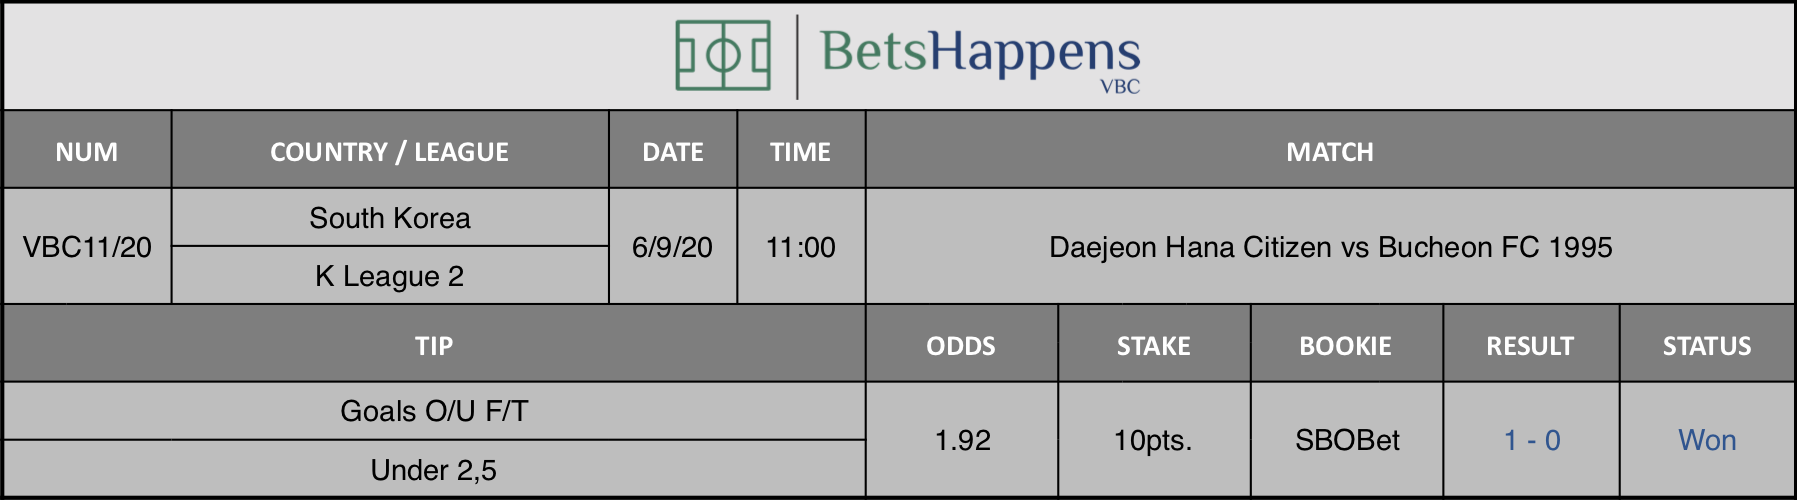 Results of our advice for the game Daejeon Hana Citizen vs Bucheon FC 1995 in which Goals O / U F / T Under 2,5 is recommended.